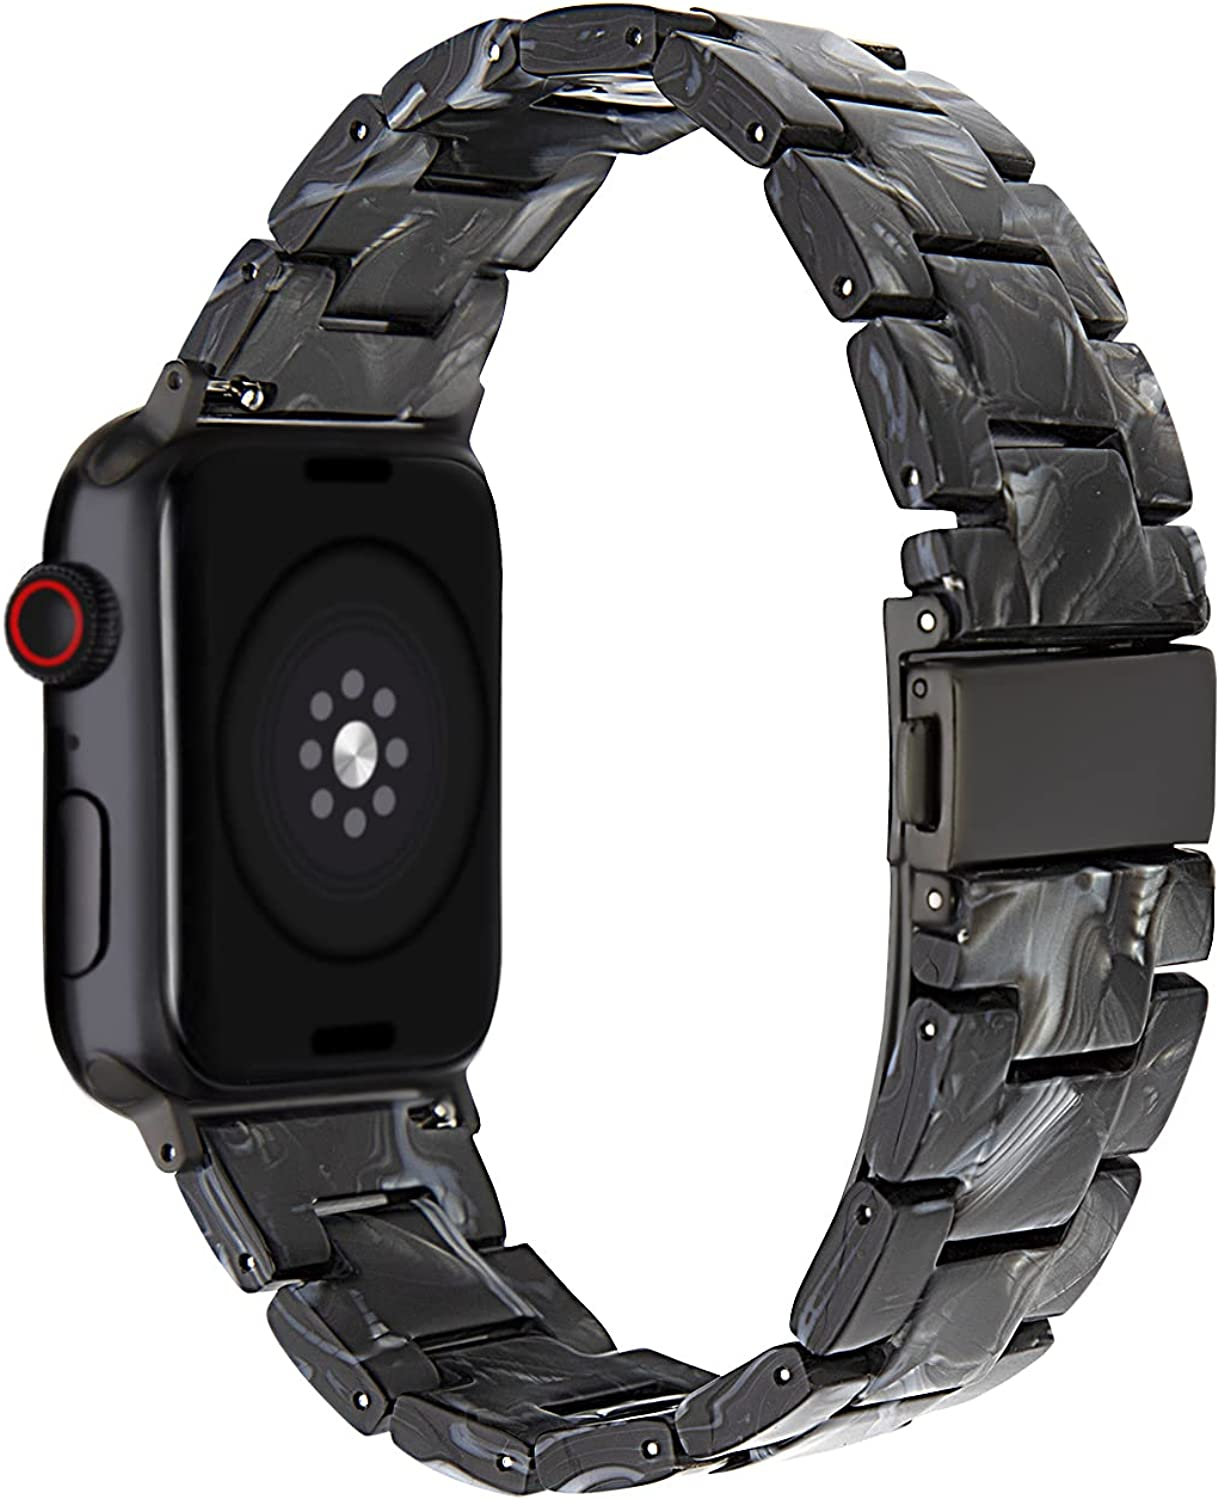 SEURE Resin Band Compatible with Apple Watch 38mm 40mm 42mm 44mm ,Series SE/6/5/4/3/2/1 Women Men Strap with Stainless Steel Buckle Replacement Wristband Bracelet